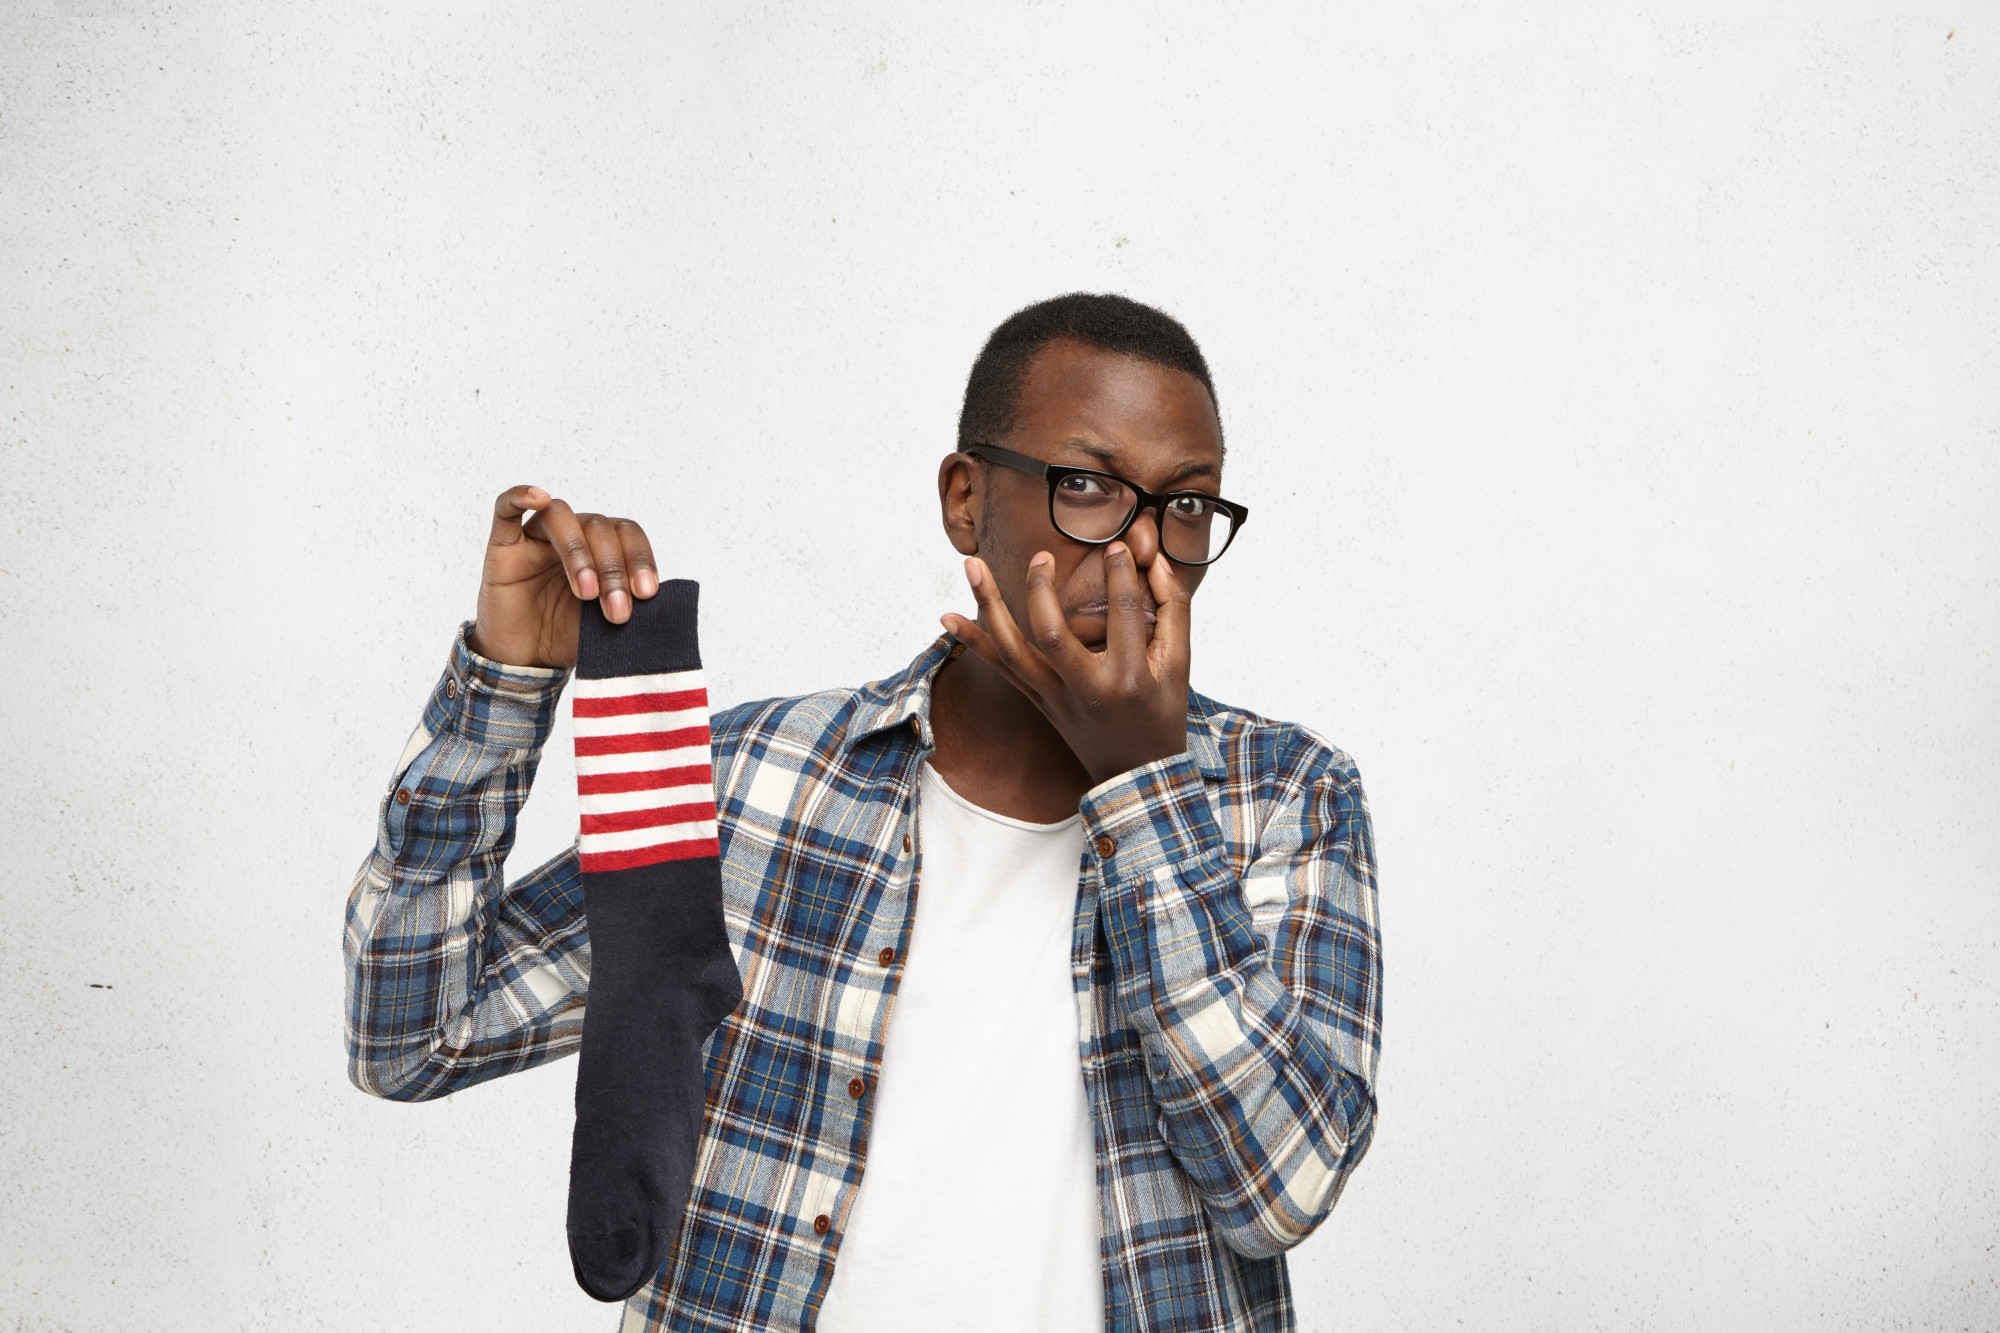 man with glasses holding up sock in one hand, holding nose in other hand